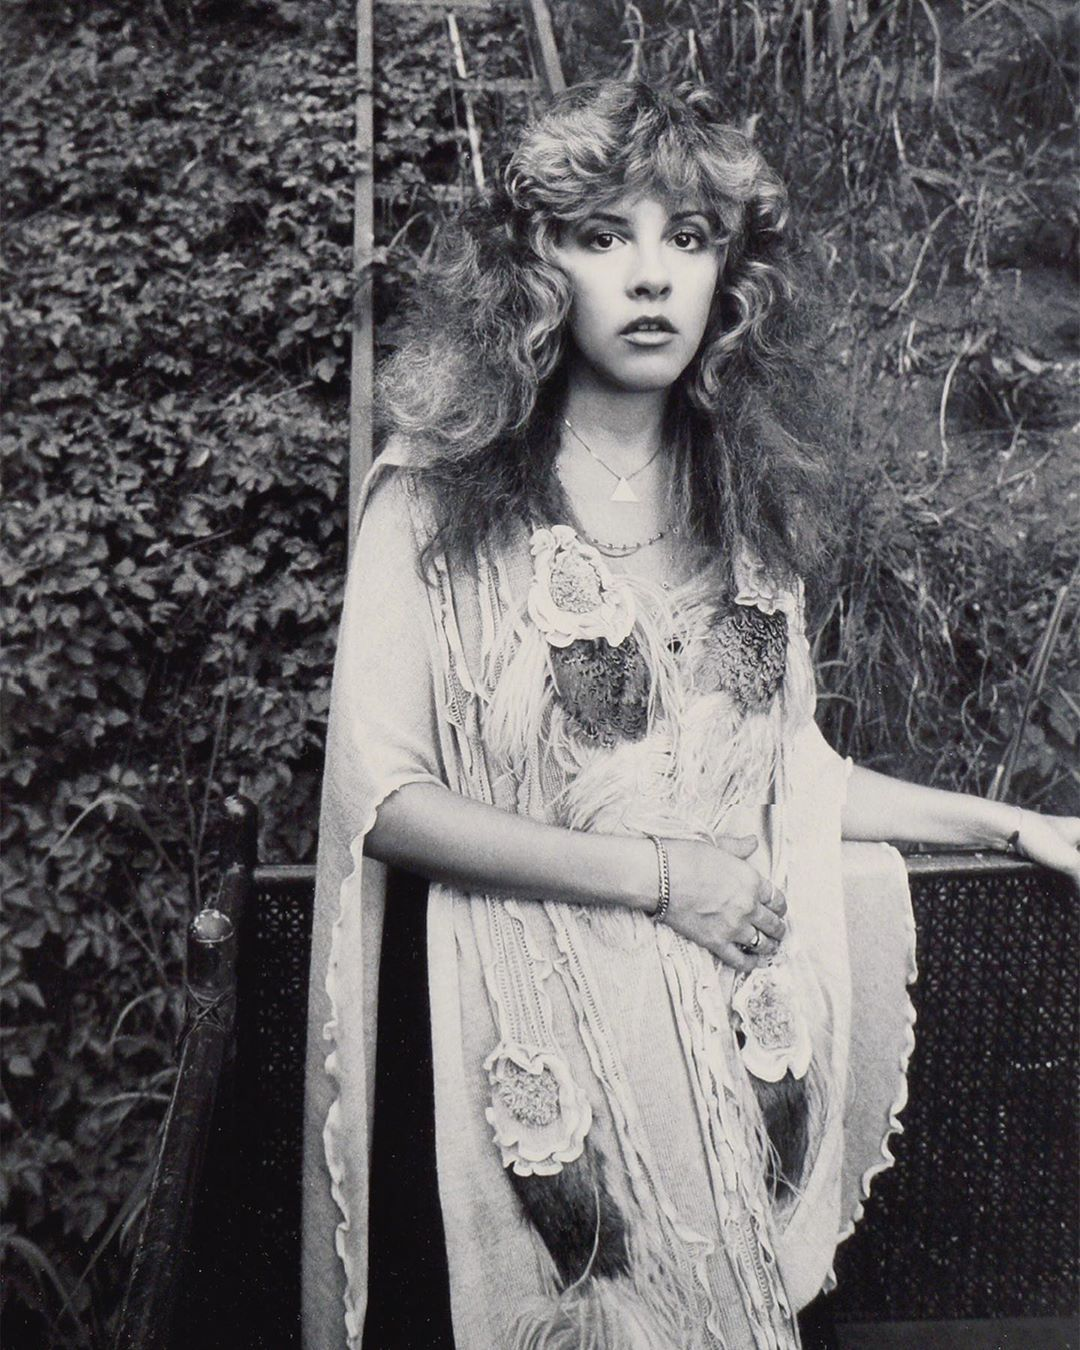 Stevie Nicks Laurel Canyon 1981 Photo By Neal Preston Stevie Nicks Fleetwood Mac Stevie Stevie Nicks Style [ 1350 x 1080 Pixel ]